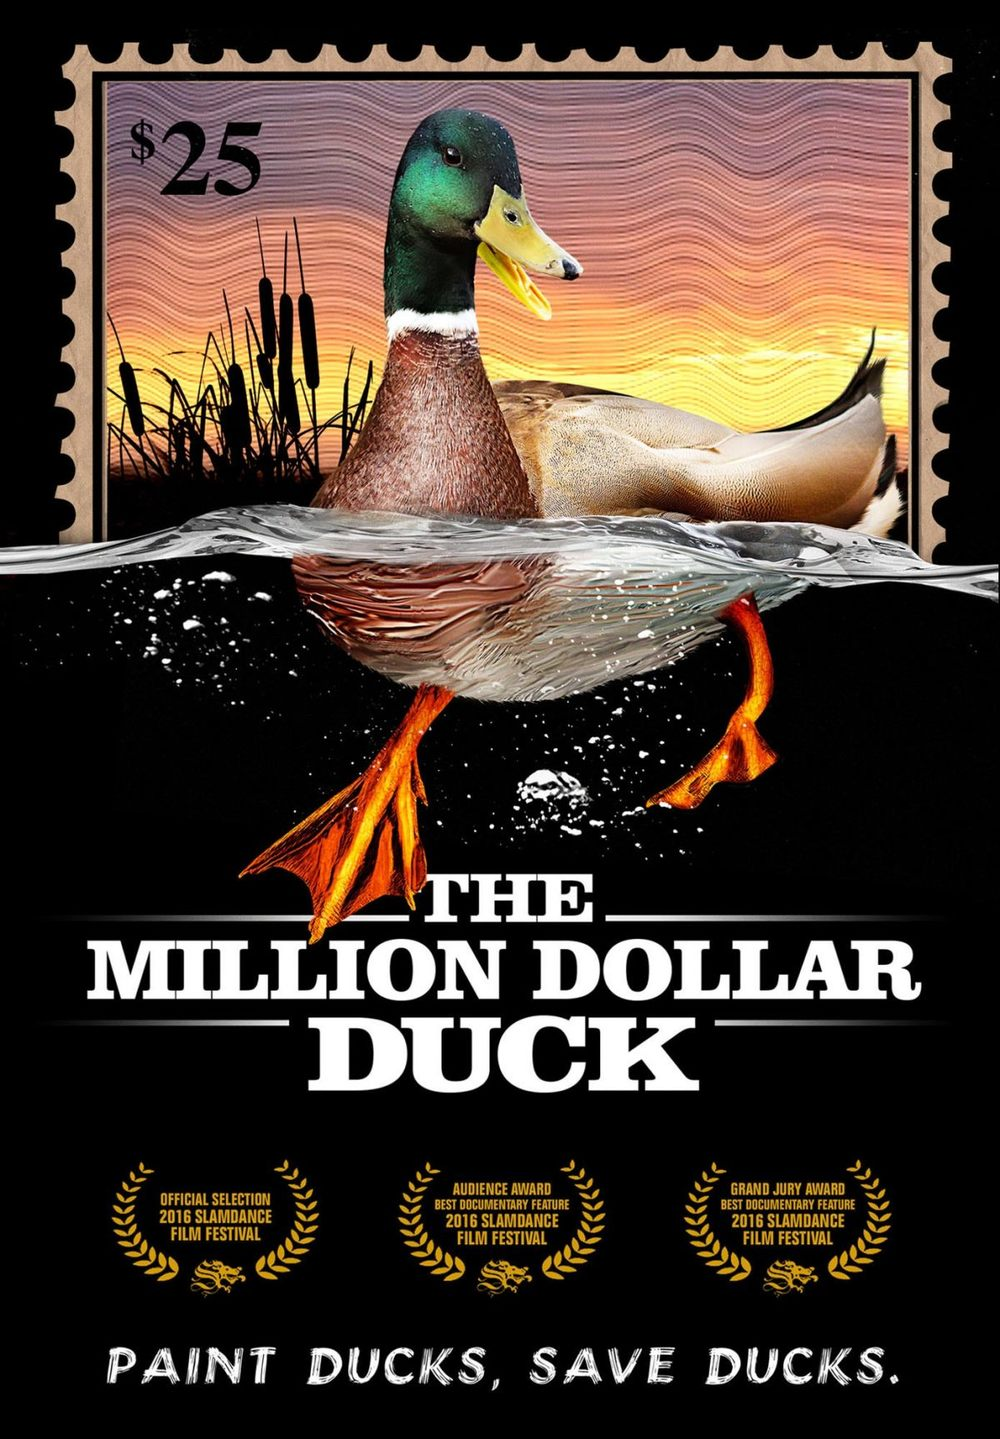 Million-Dollar-Duck-Poster_1200_1727_81_s.jpg